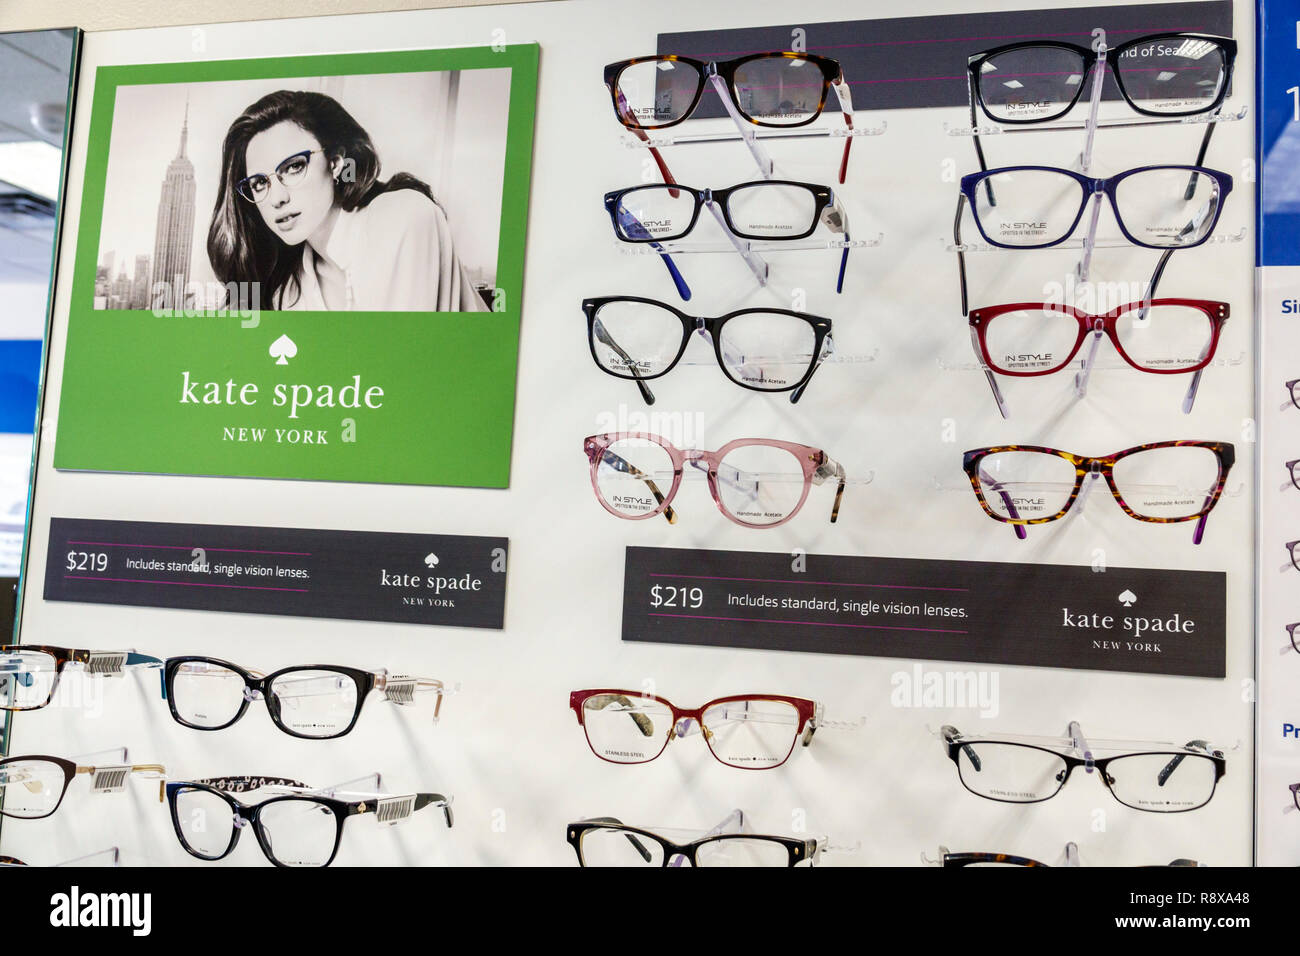 f03f6bd1d4 Miami Beach Florida optician optometrist business store eyeglasses display  sale fashion Kate Spade New York frames